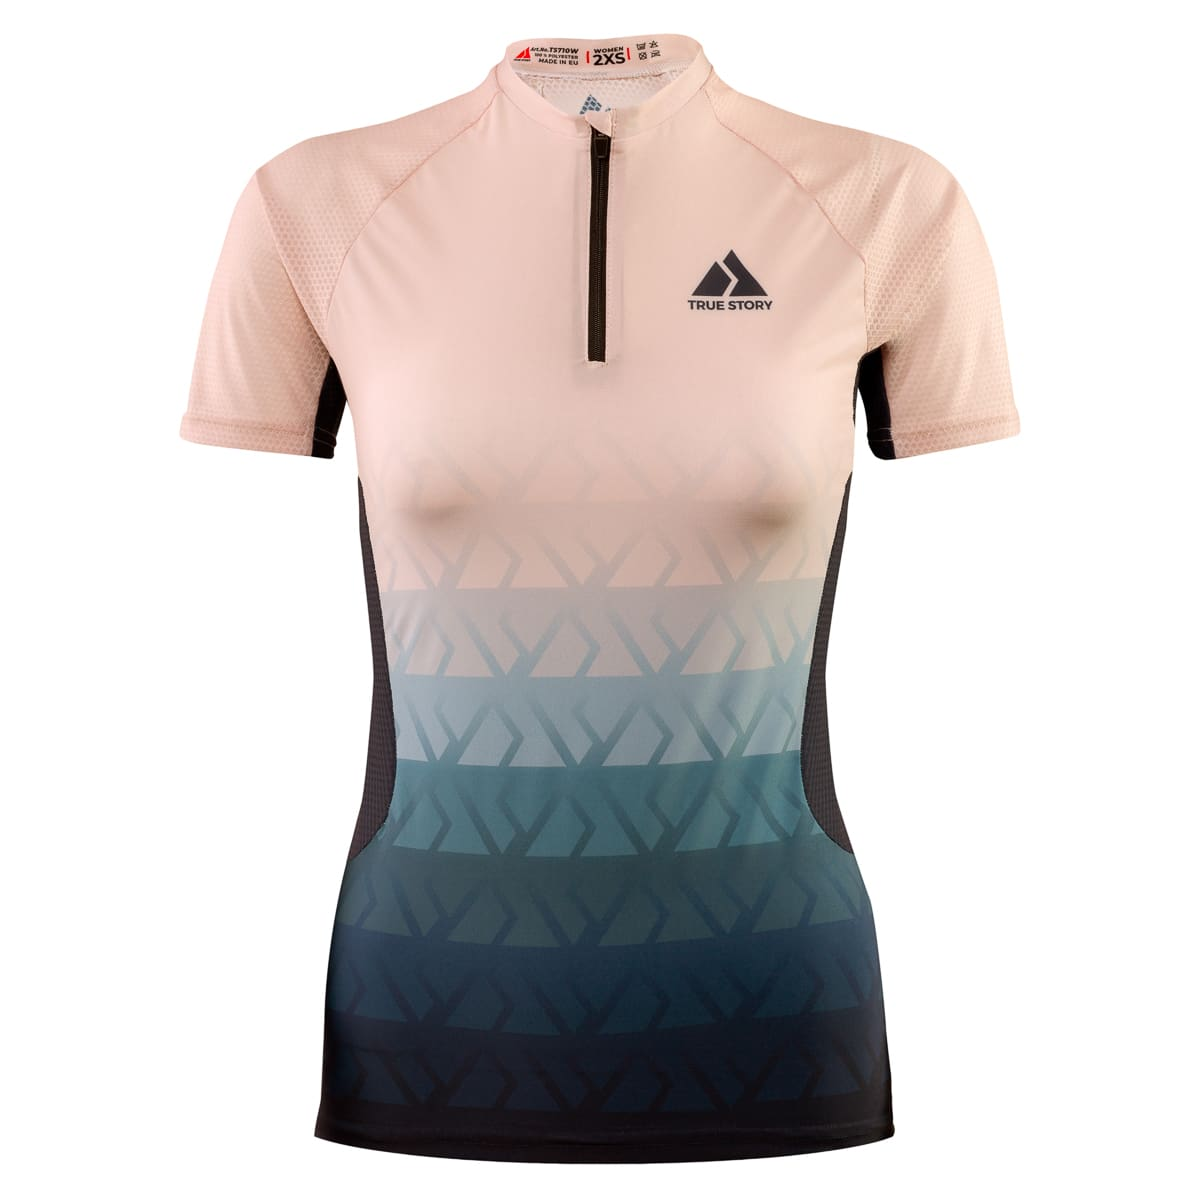 04| Elite trail running shirt, WOMEN